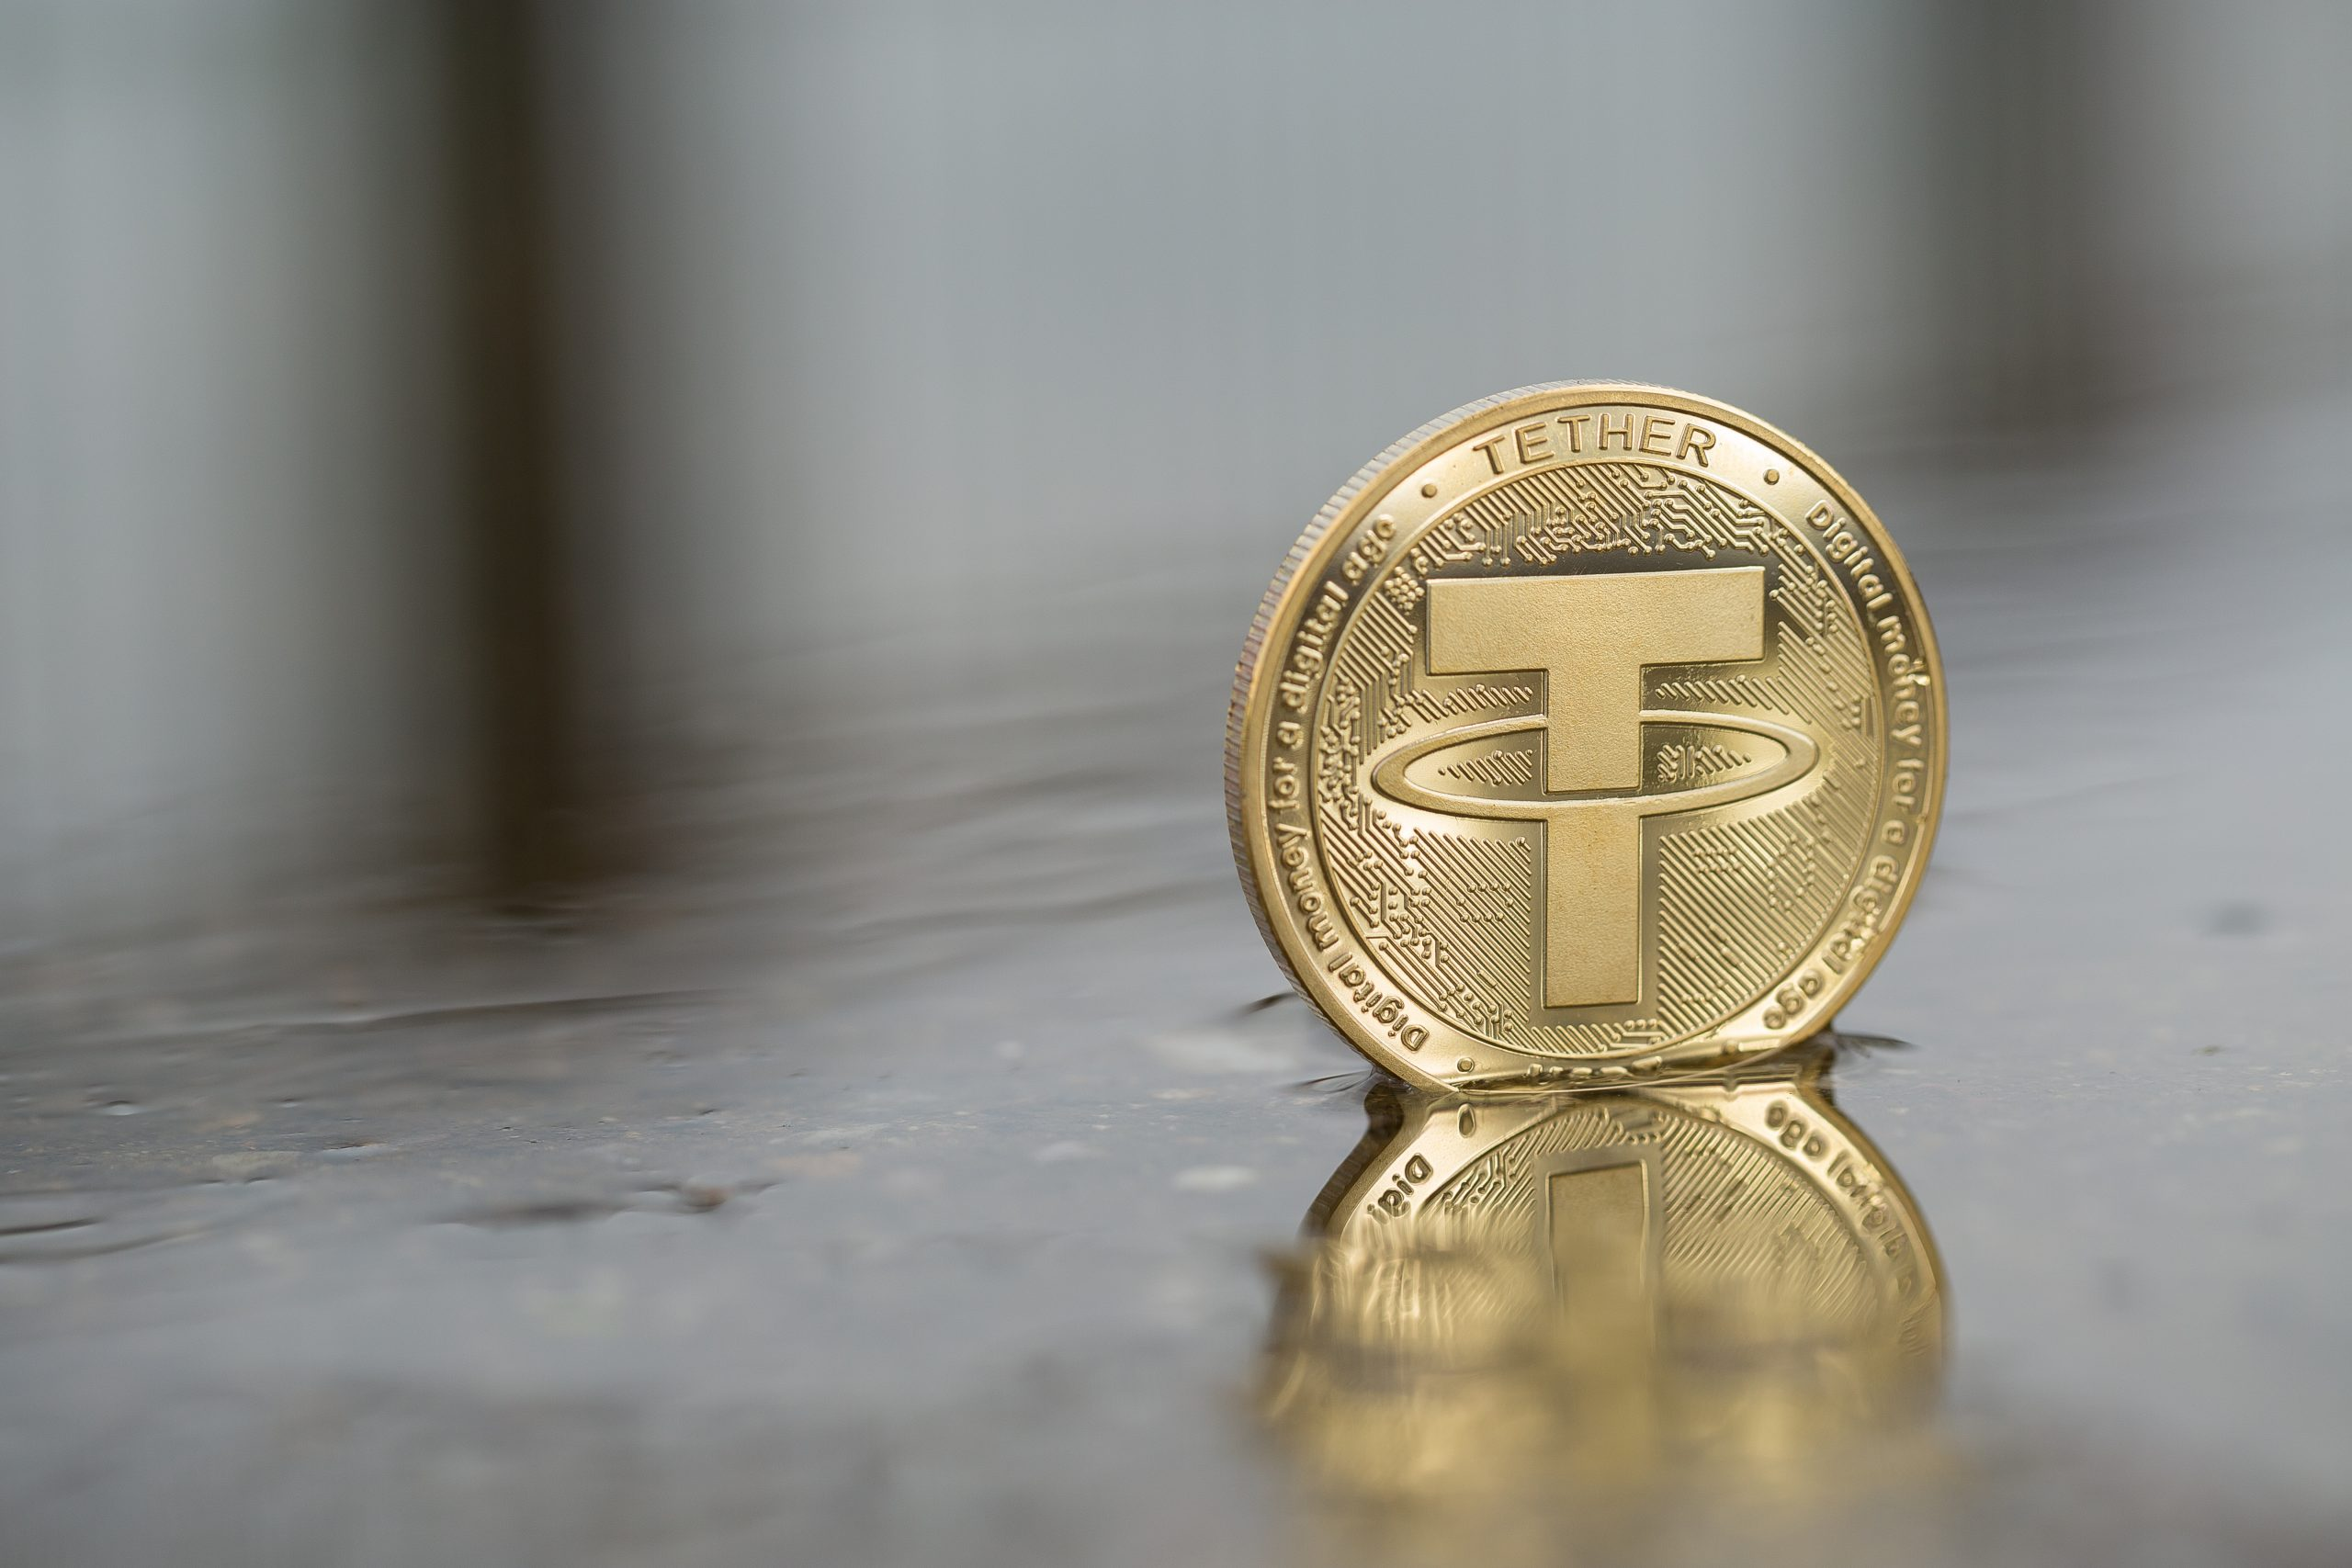 Is Tether True a Rip-off to Enrich Bitcoin Merchants?